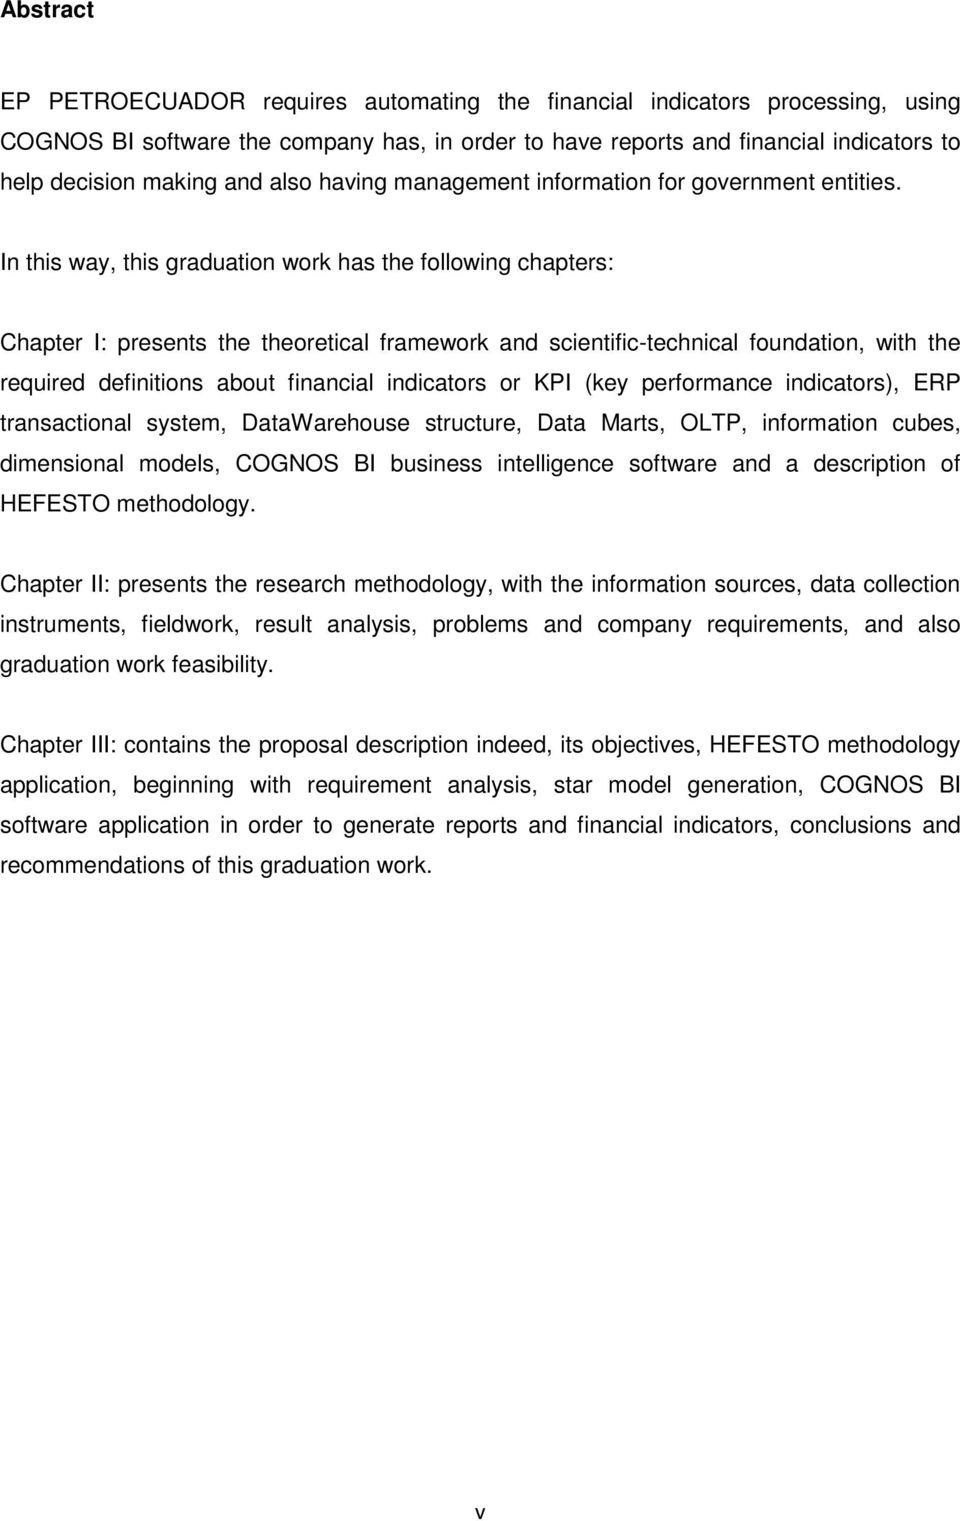 In this way, this graduation work has the following chapters: Chapter I: presents the theoretical framework and scientific-technical foundation, with the required definitions about financial